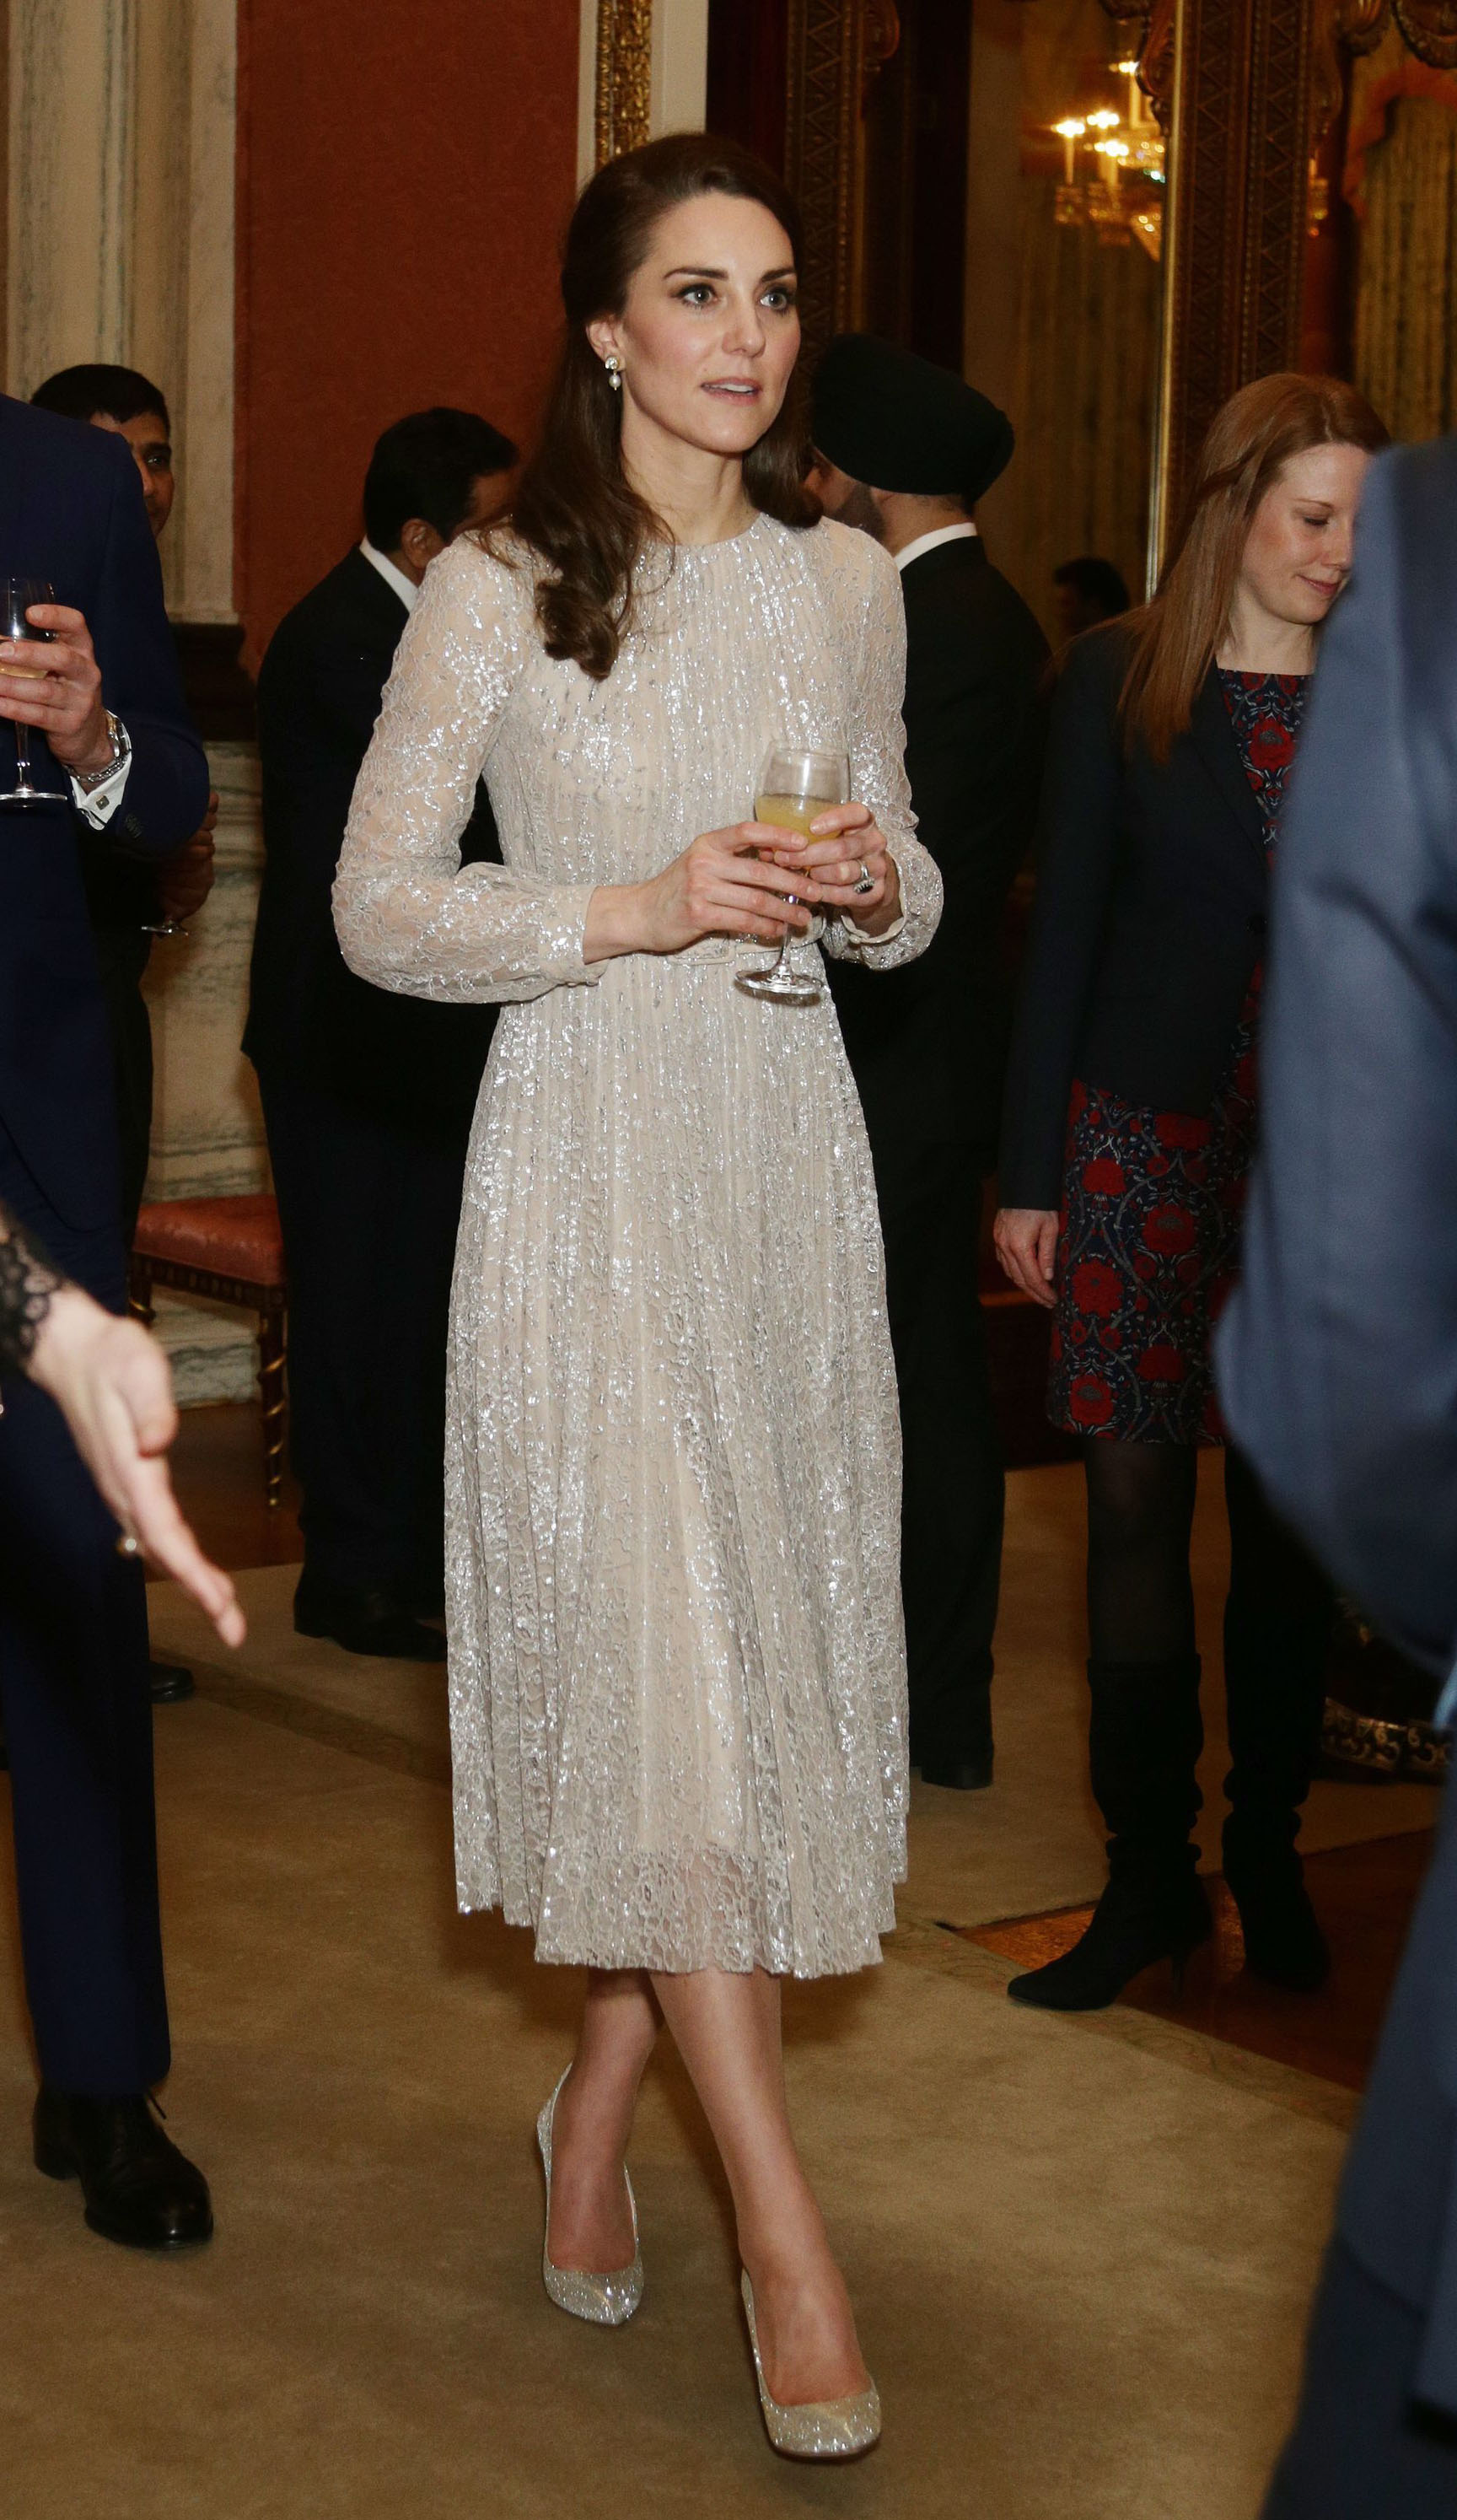 (Yui Mok/PA) The Duchess of Cambridge during a reception to mark the launch of the UK-India Year of Culture 2017 at Buckingham Palace, London.